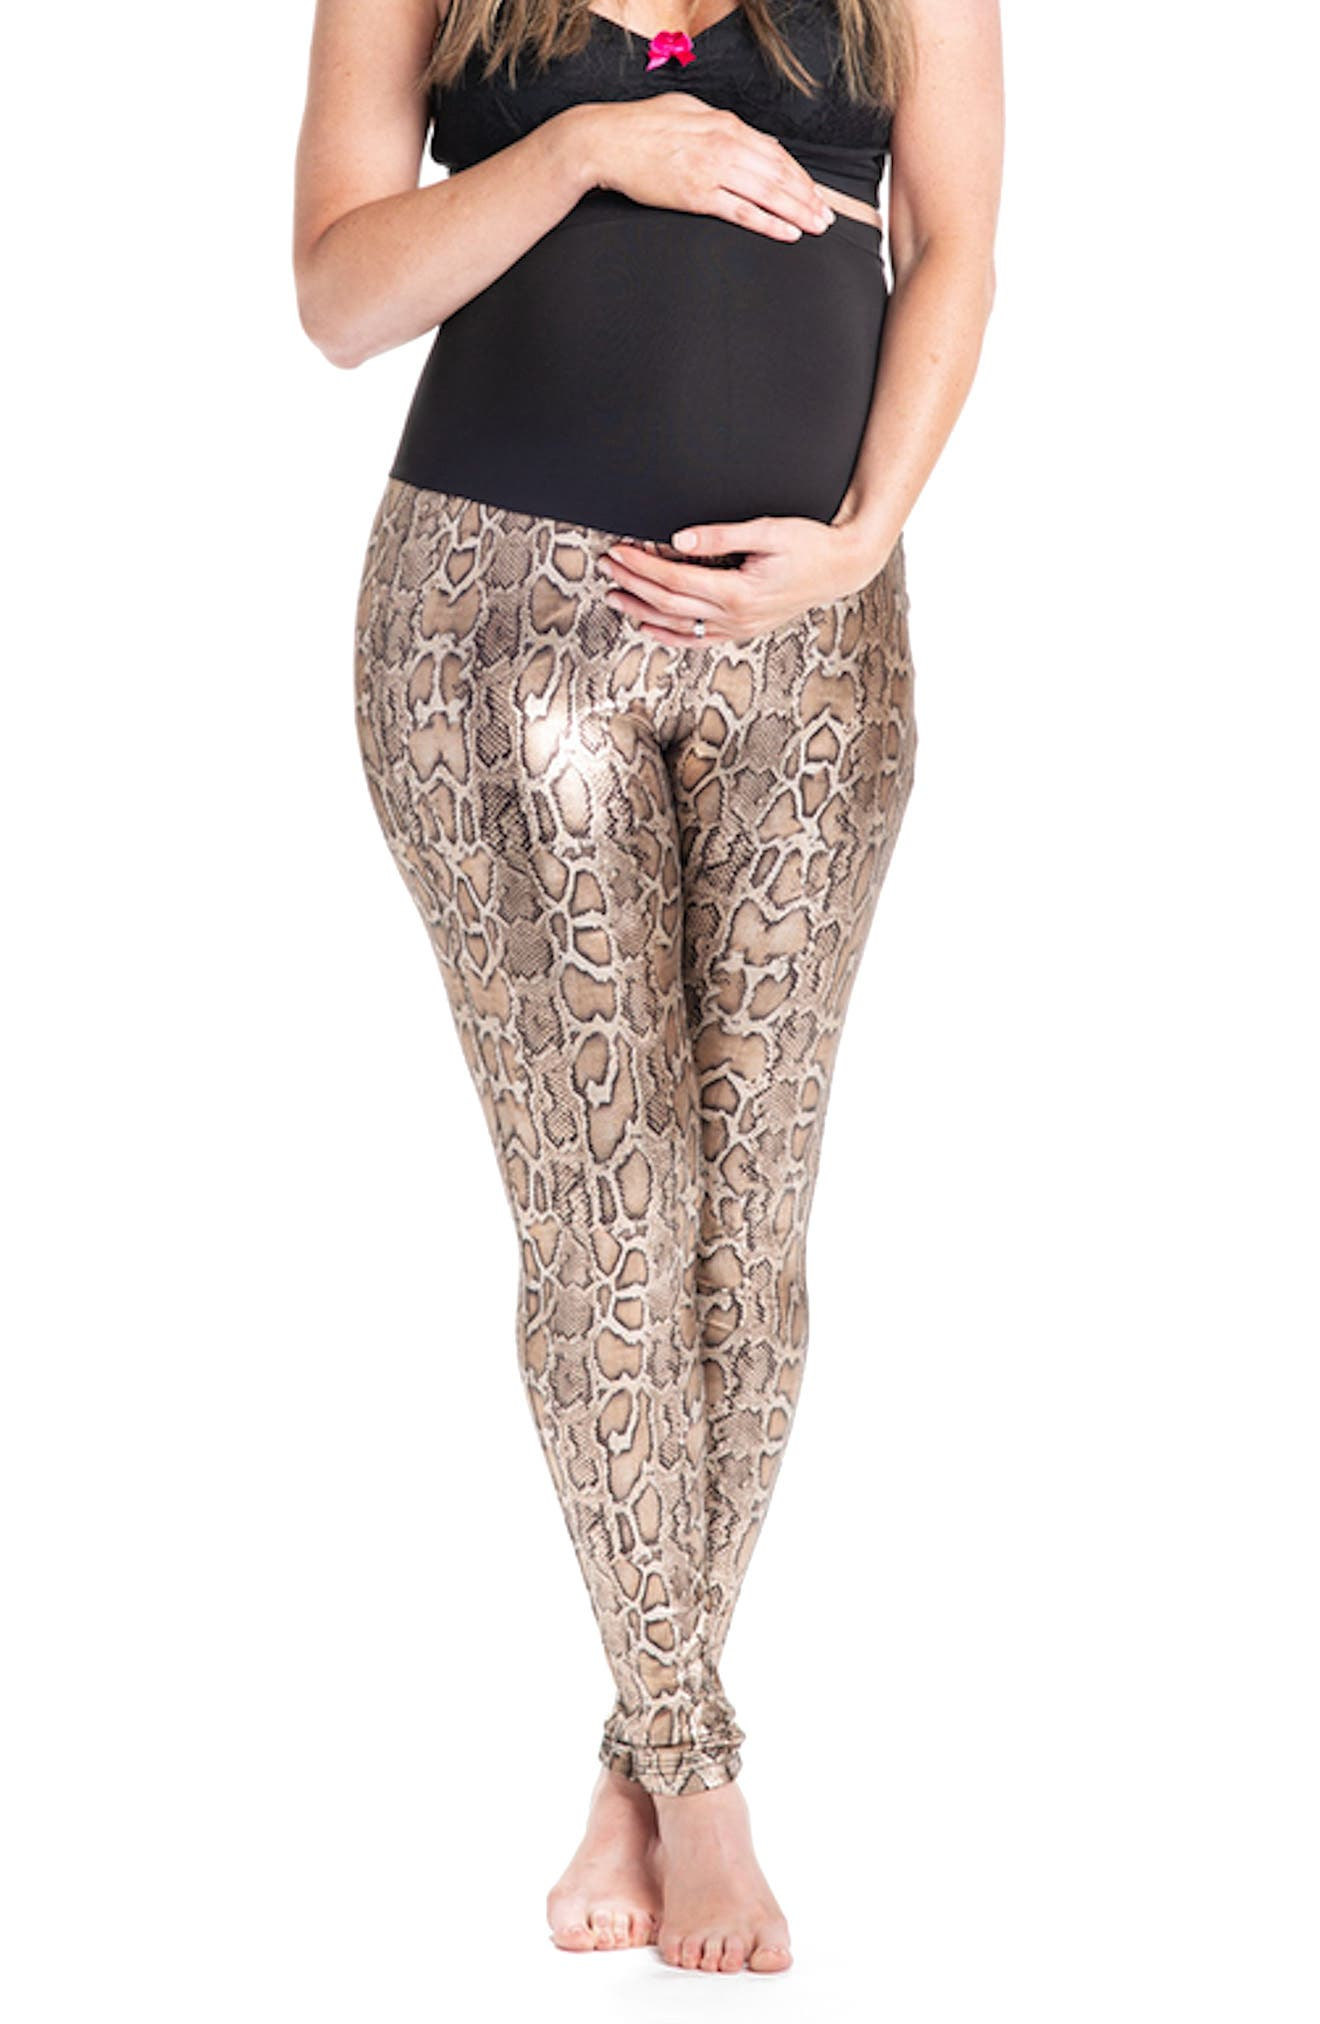 Preggo Leggings Python Print Maternity Leggings, Metallic